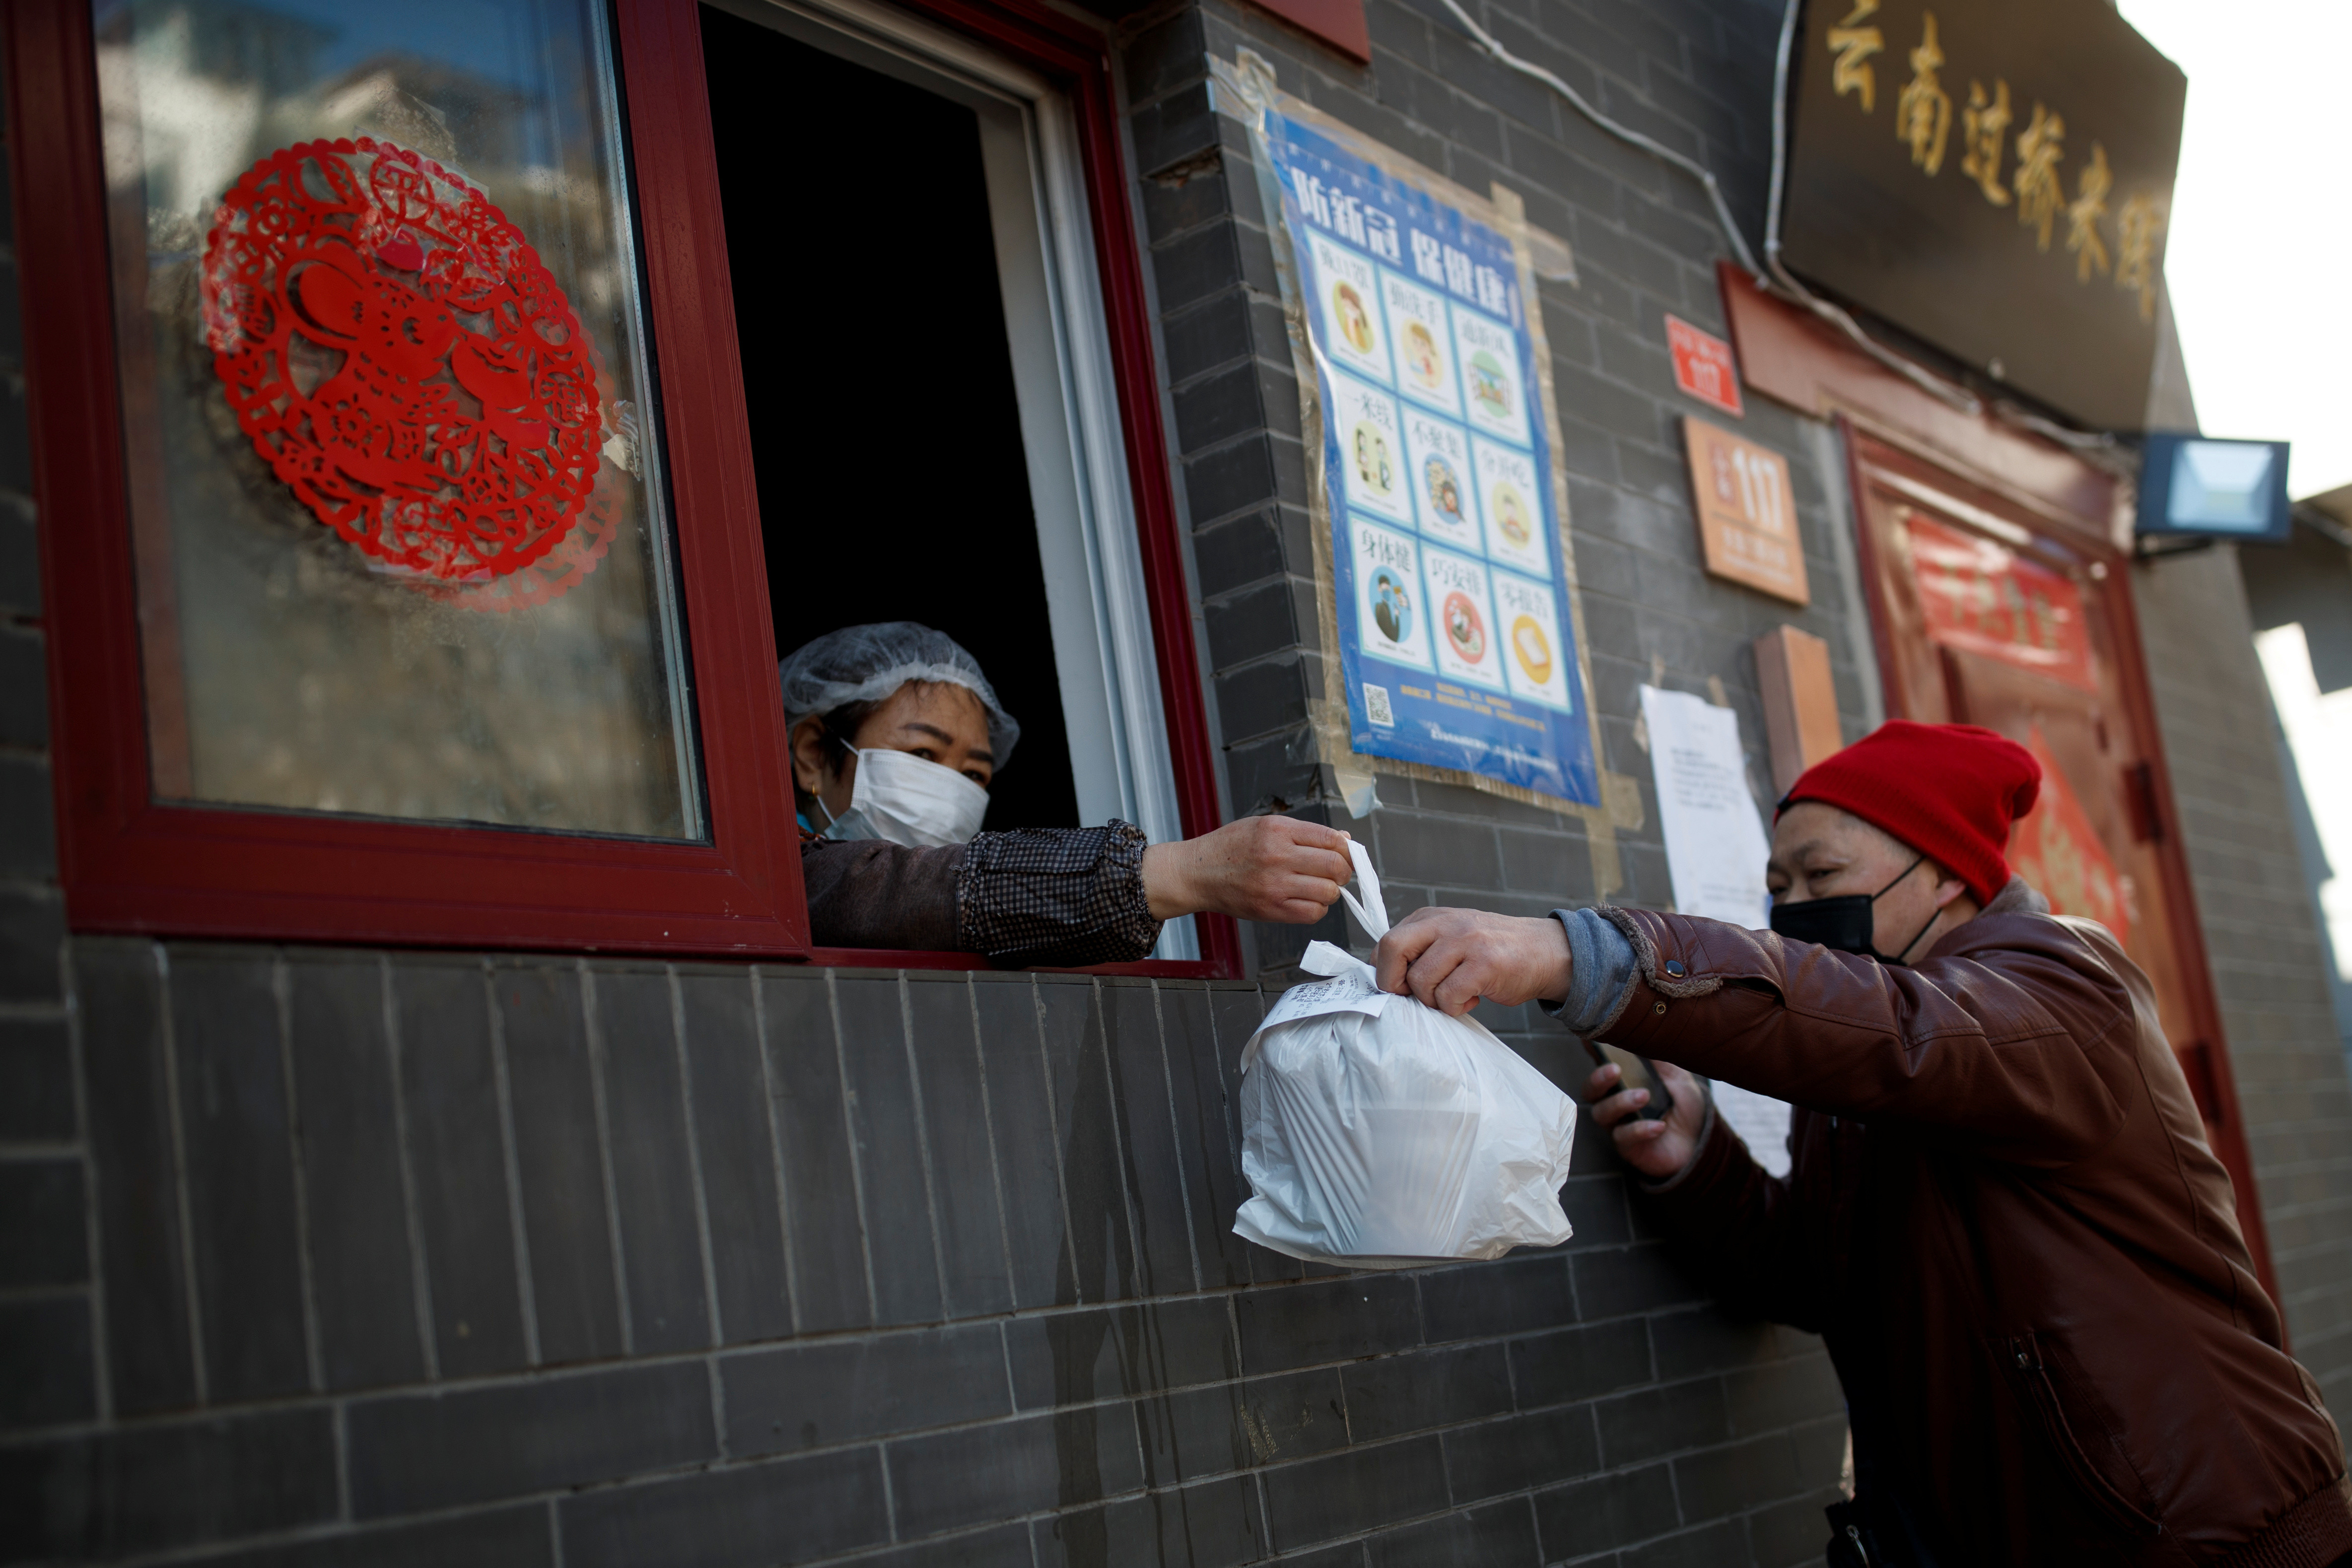 A delivery driver pickes up takeaway food that is handed through the window of a restaurant in Beijing as the country is hit by an outbreak of the novel coronavirus, China, March 3, 2020. REUTERS/Thomas Peter - RC26CF9LM982